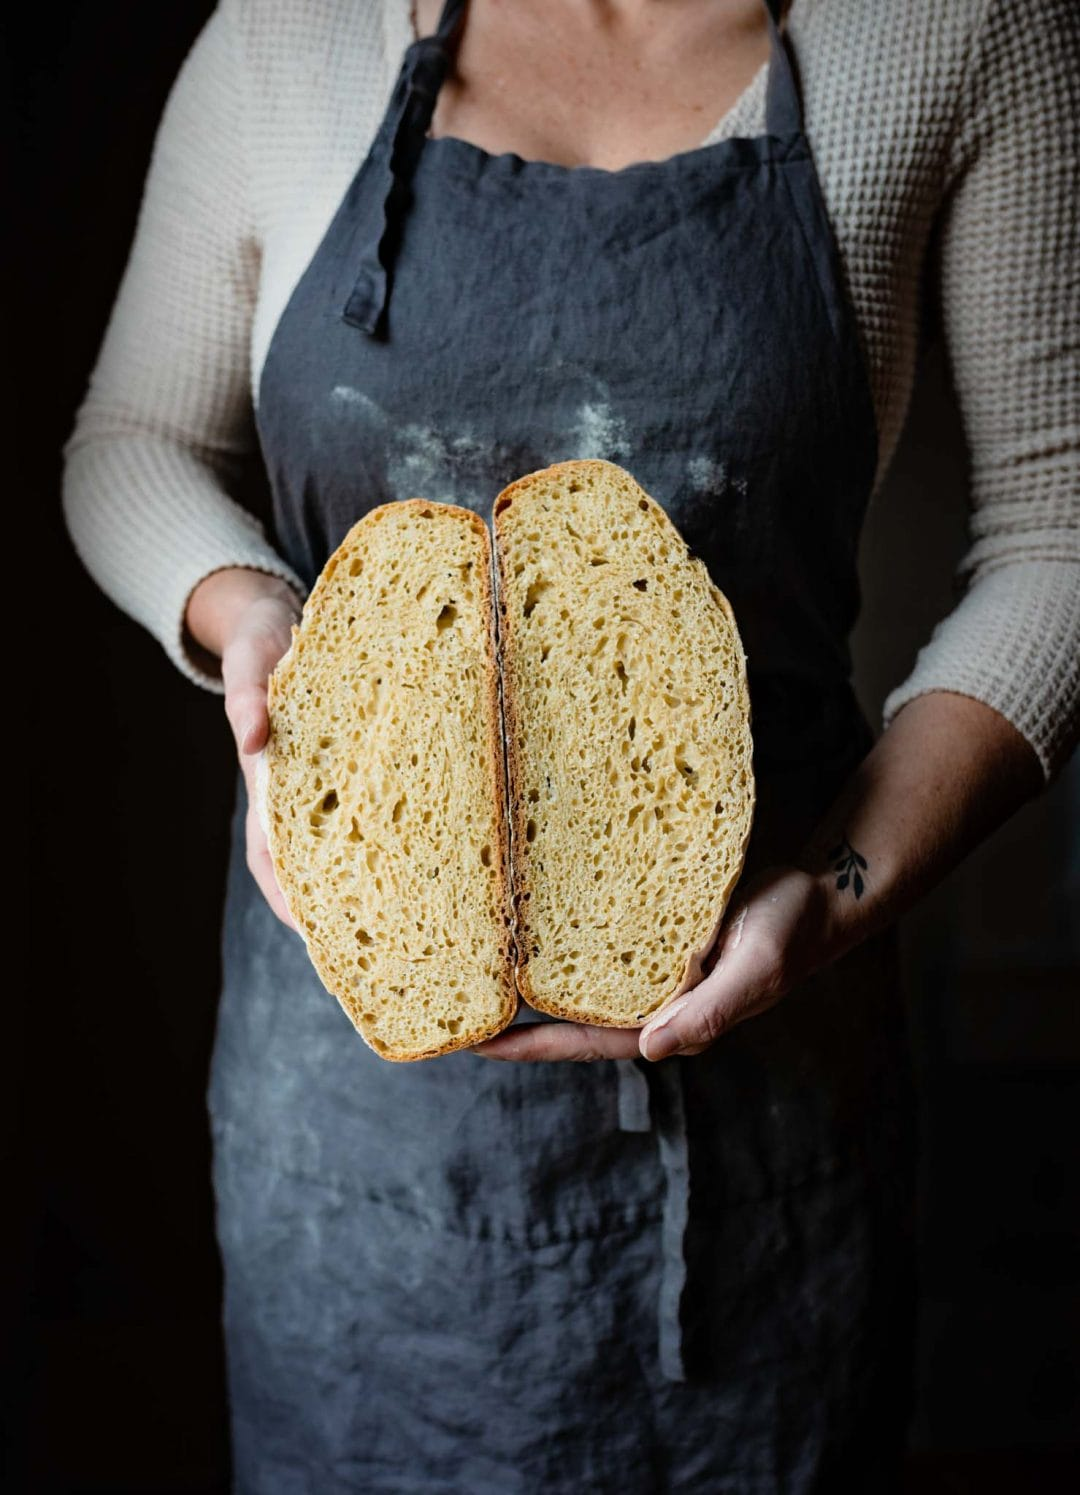 Chef holding a sliced artisan bread loaf.